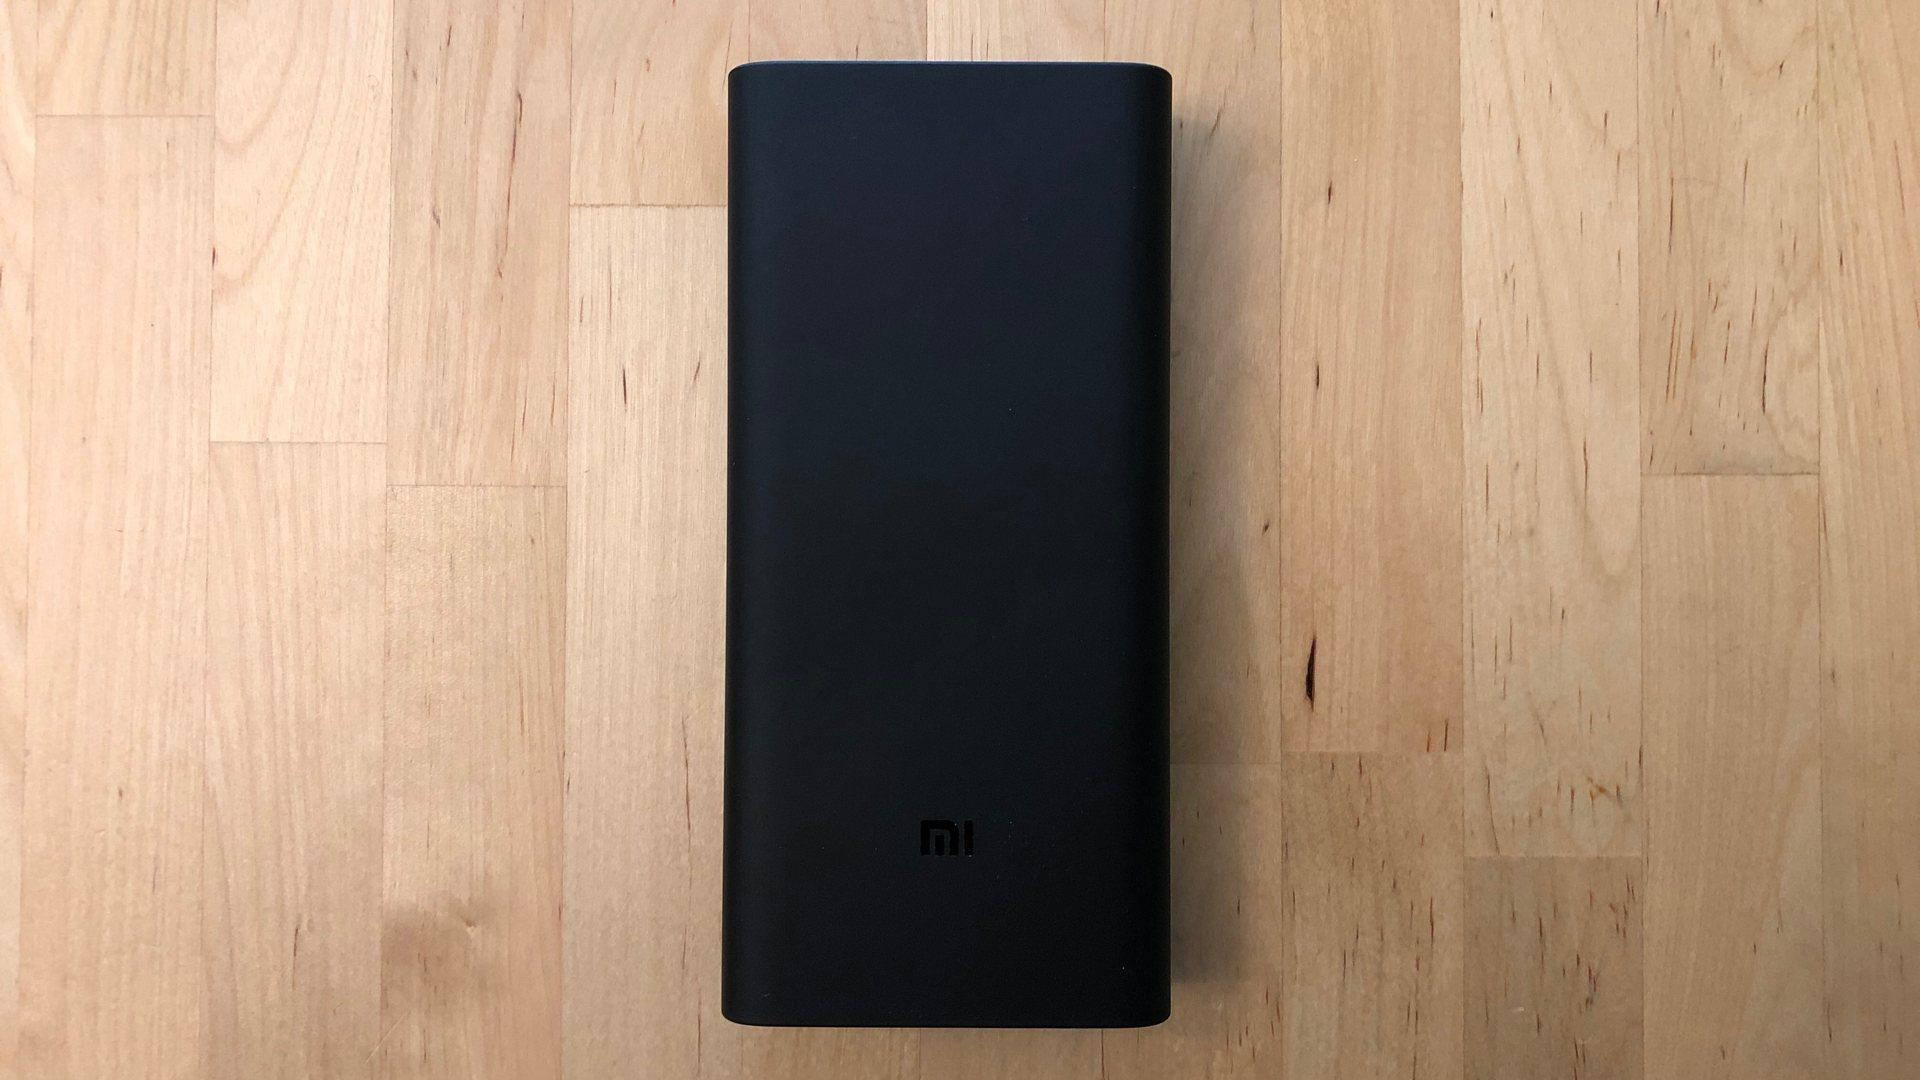 xiaomi mi power bank 3 20000 mah